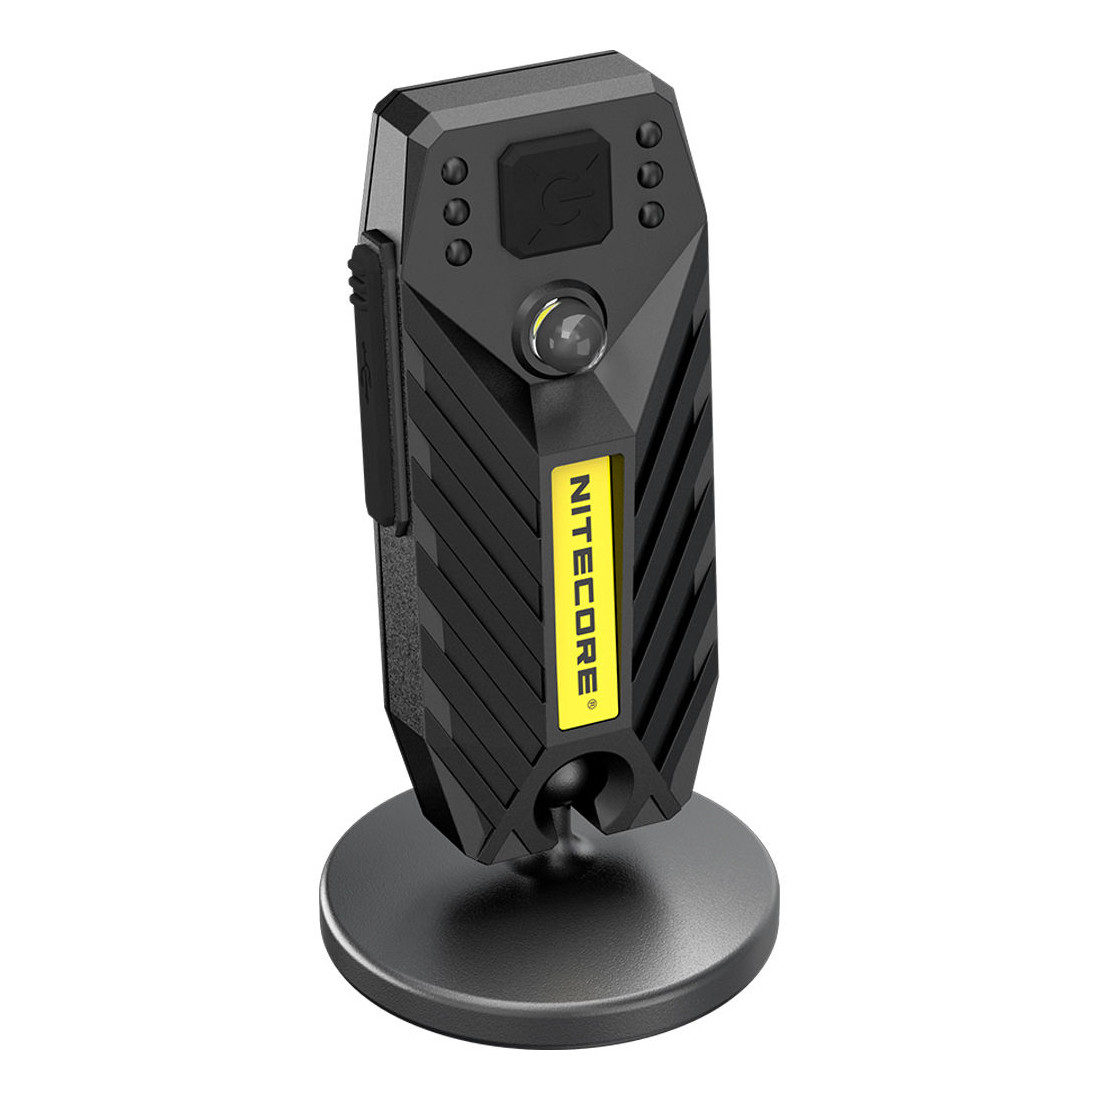 Nitecore T360M LED outdoorlamp